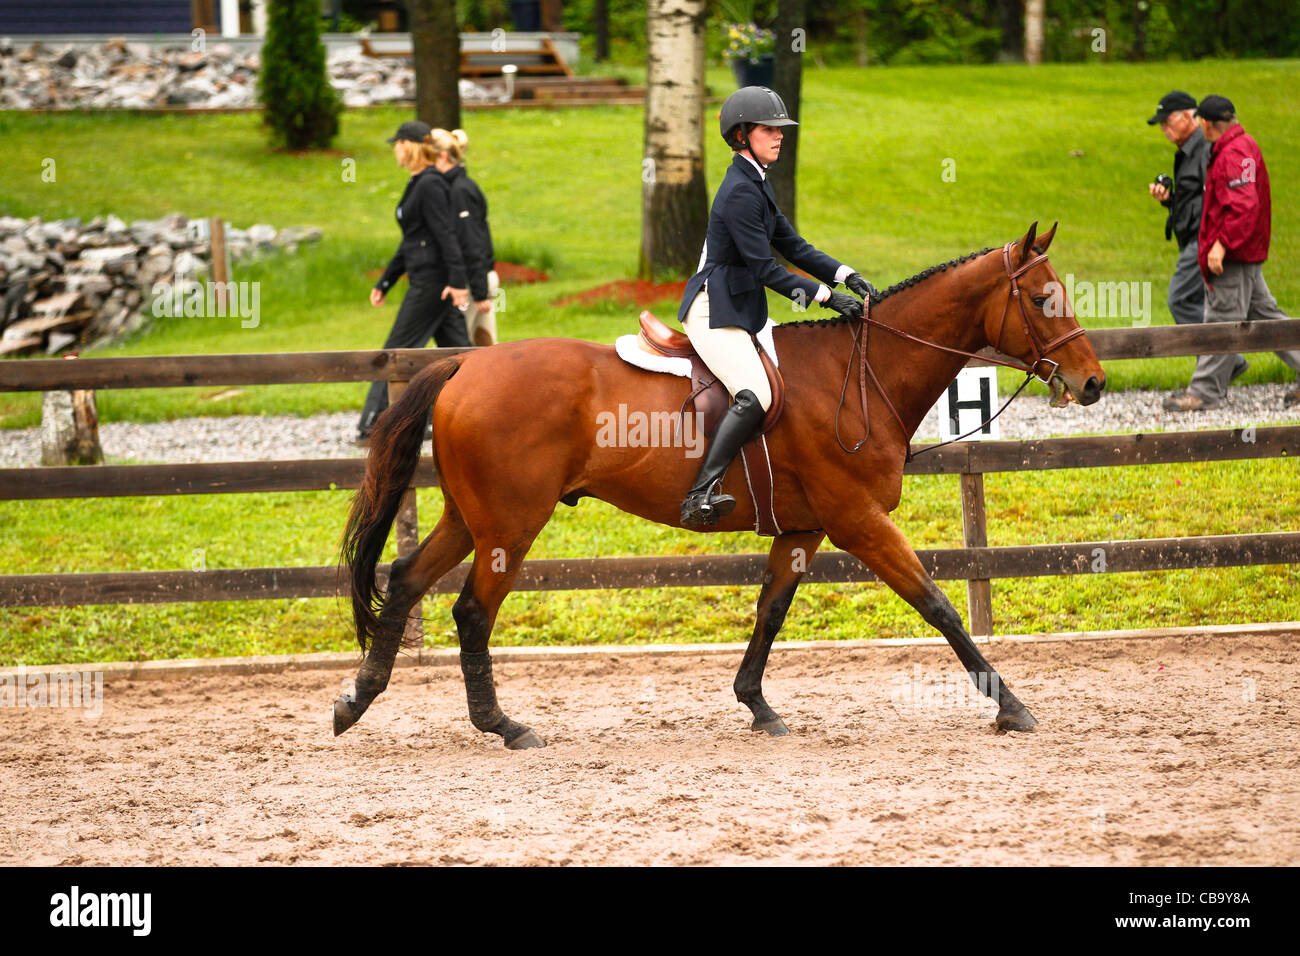 Bay horse cantering - Stock Image